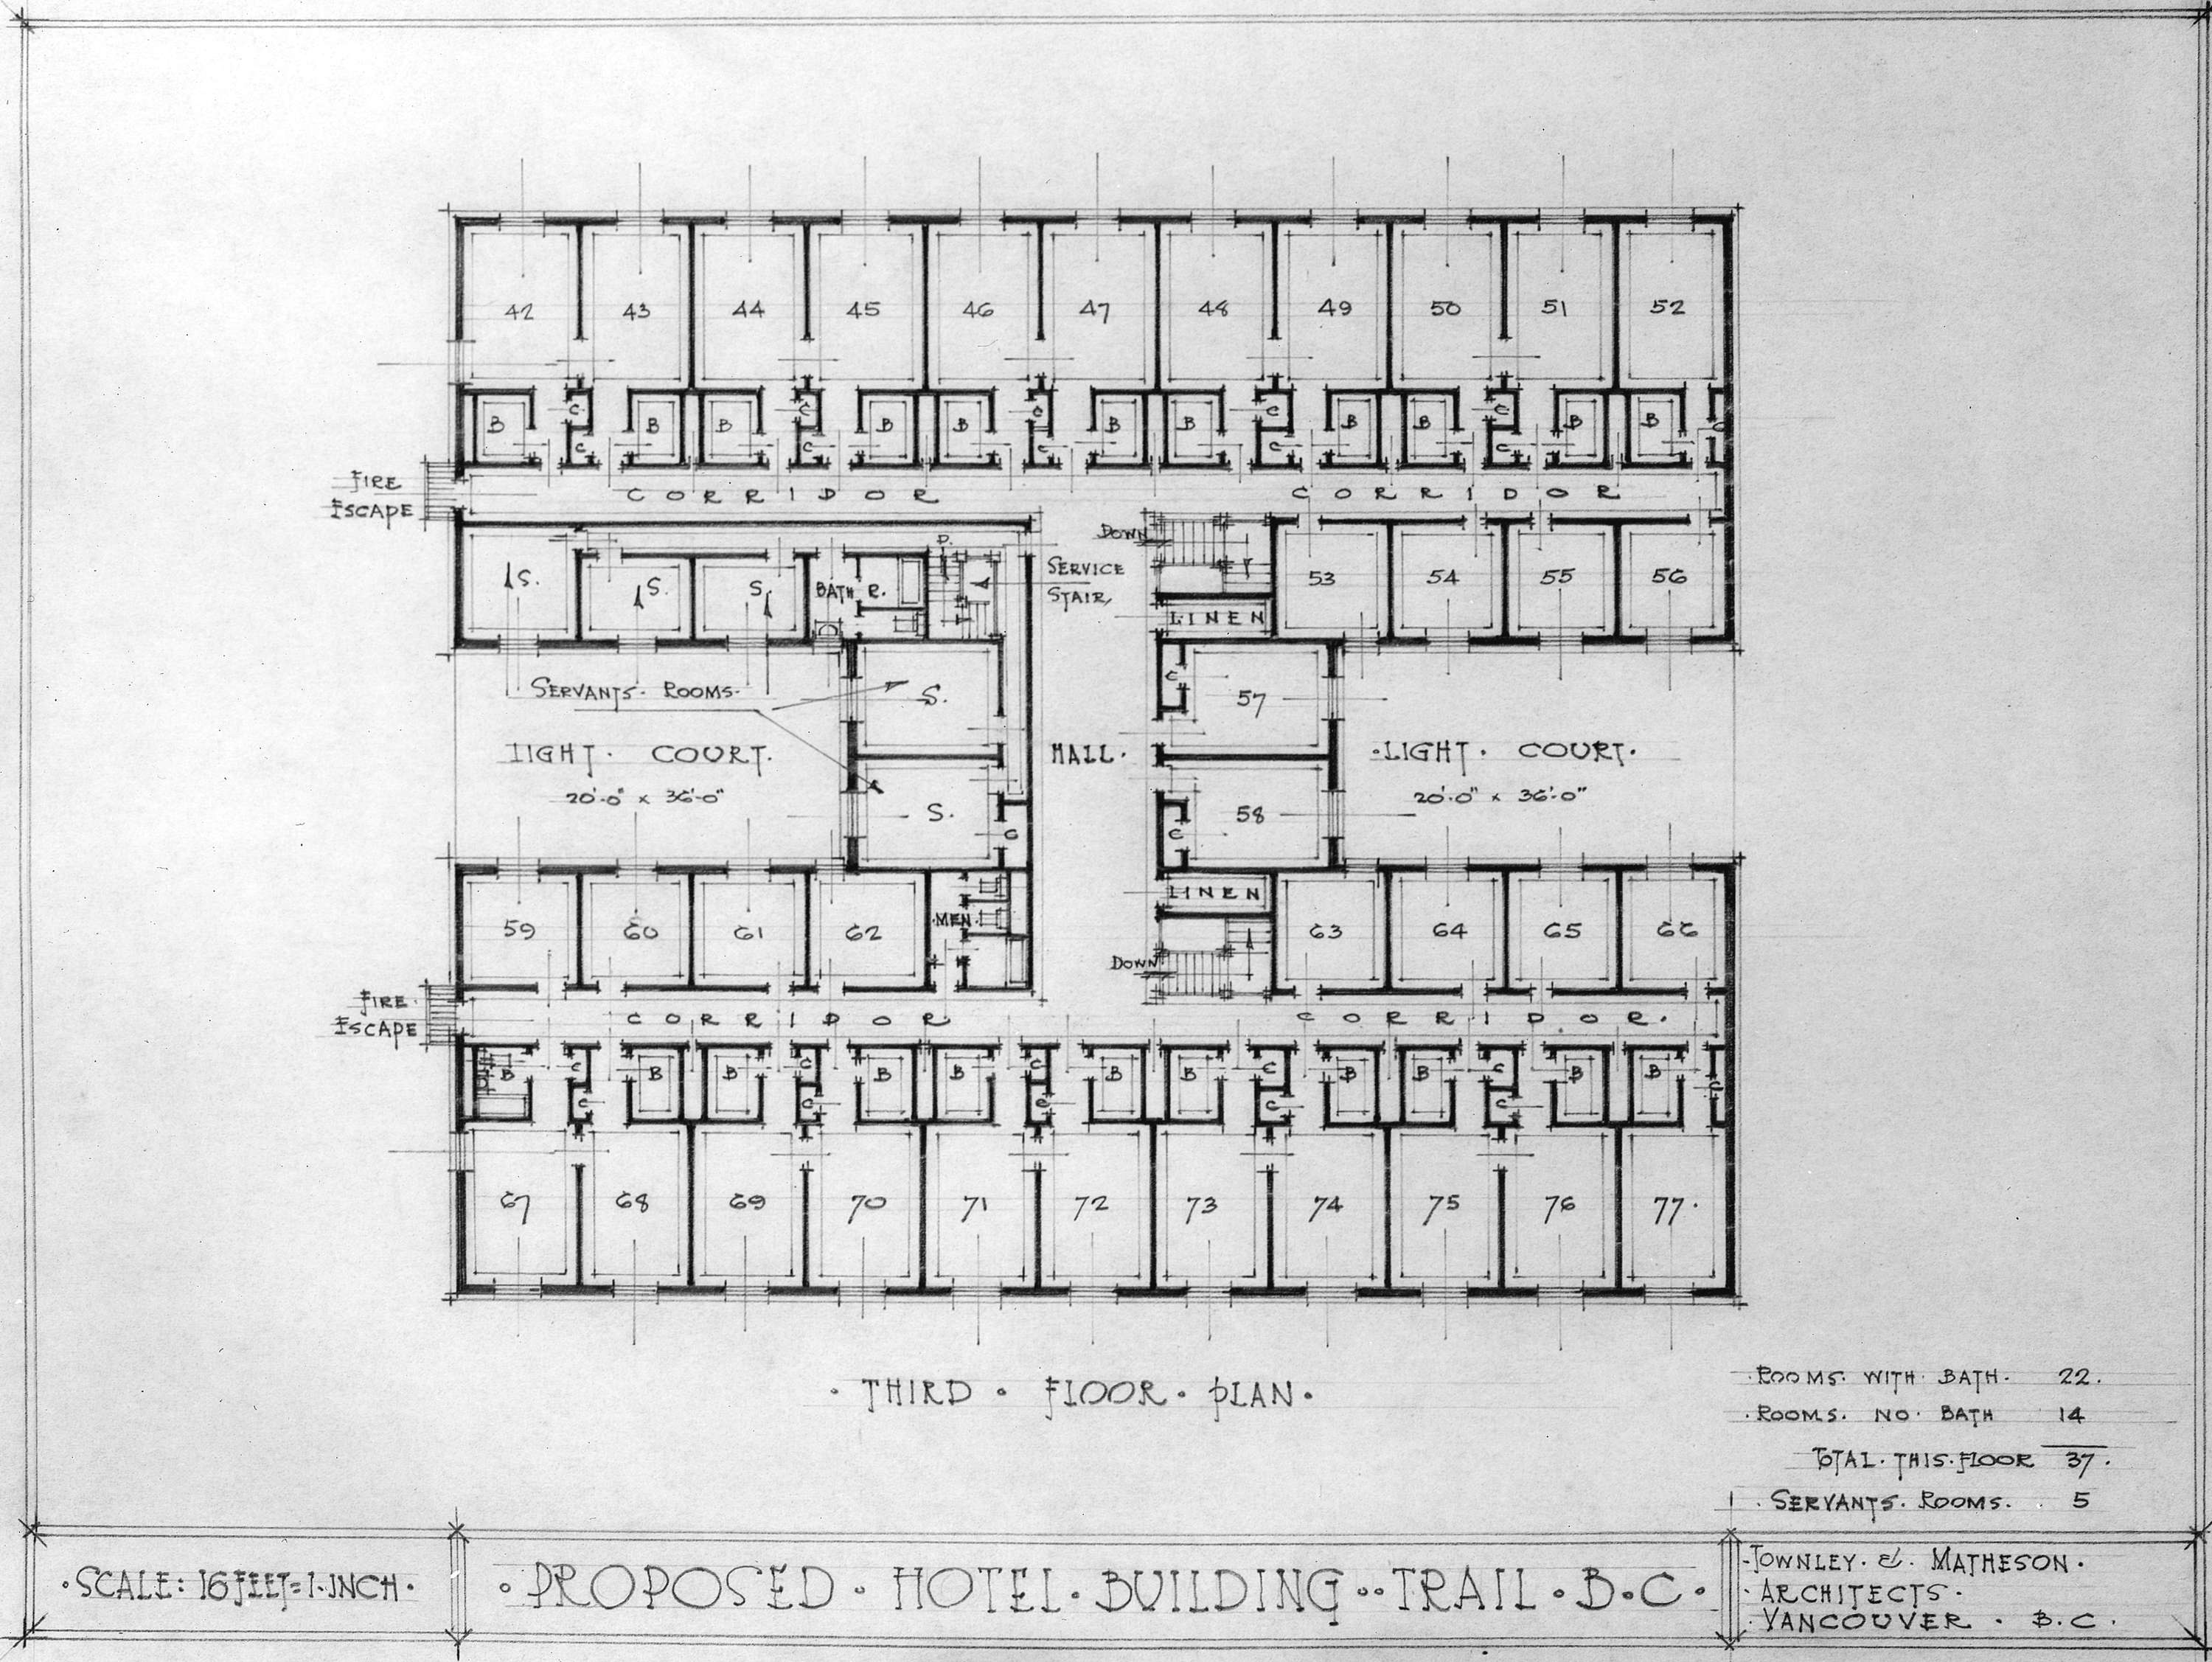 Proposed hotel building trail b c third floor plan for Area of a floor plan